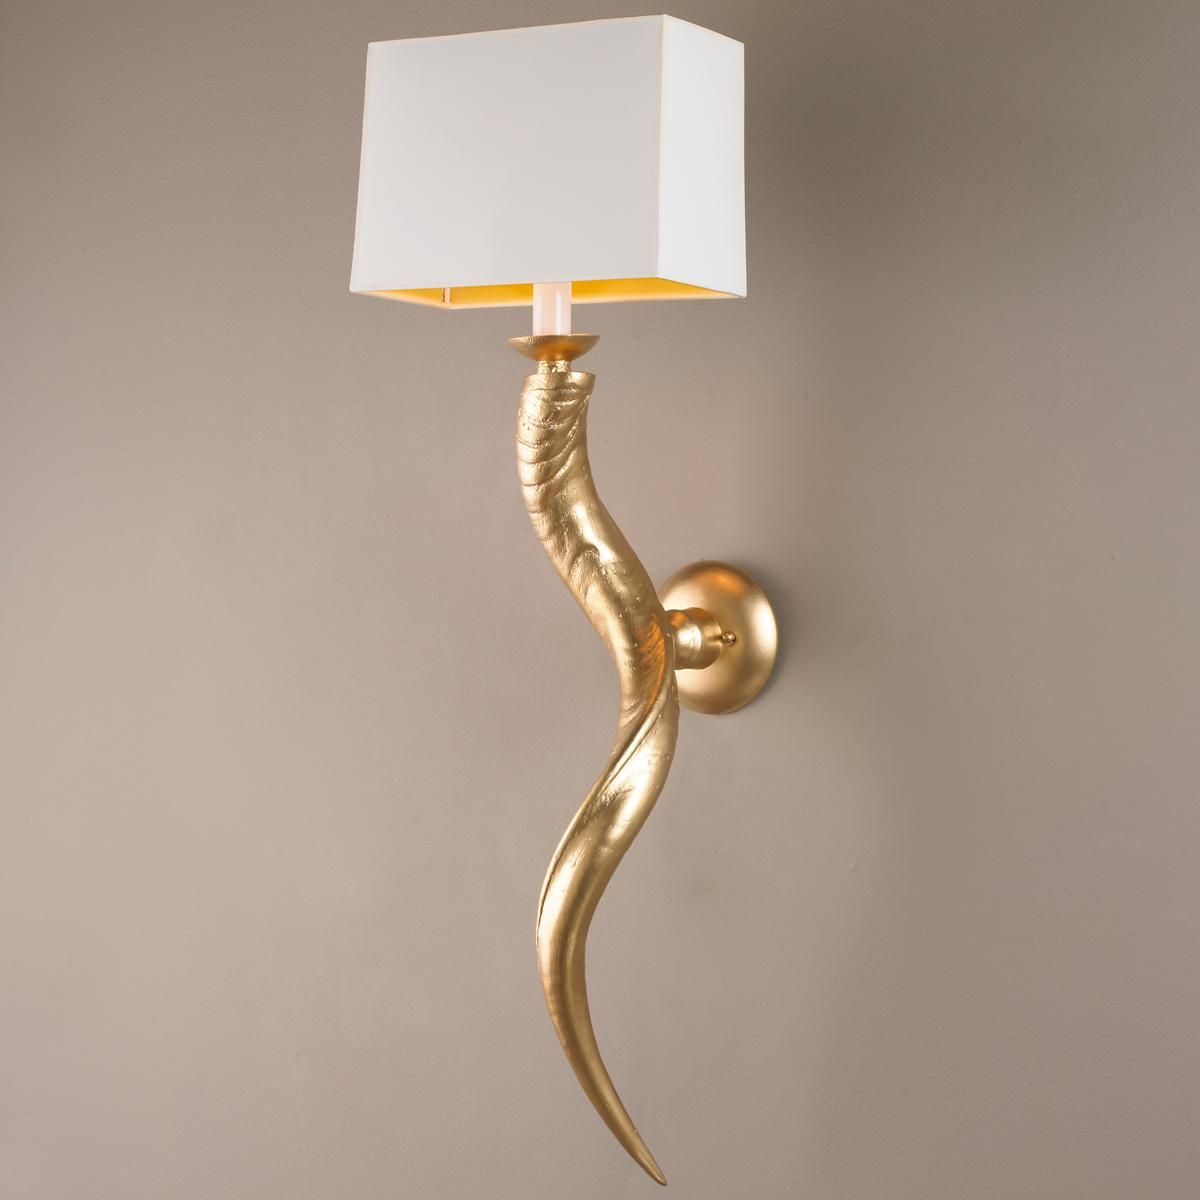 Kensington Wall Sconce 4 Finishes Shades Of Light Sconces Home Decor Wall Sconces